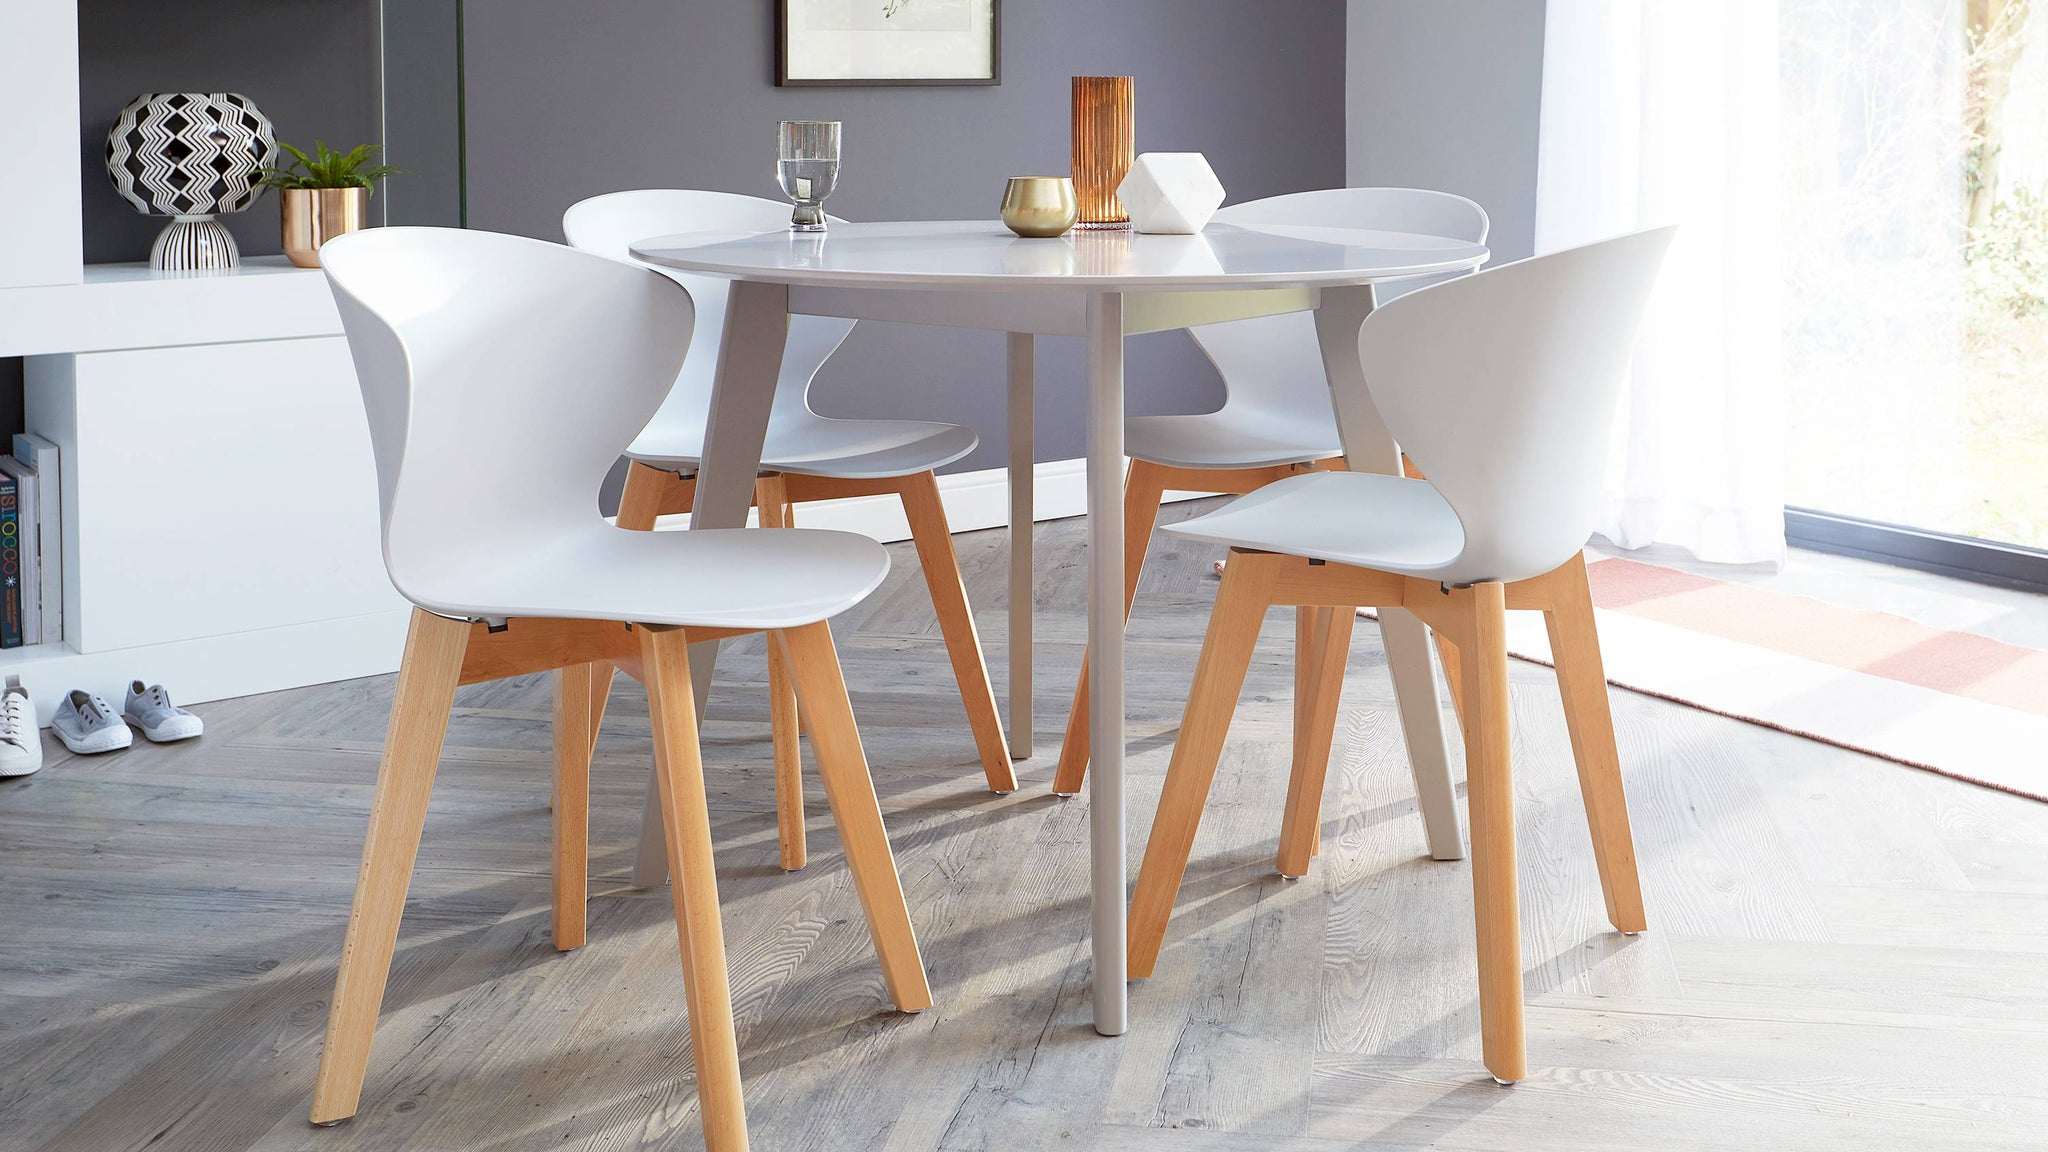 Modern plastic and wooden dining chairs